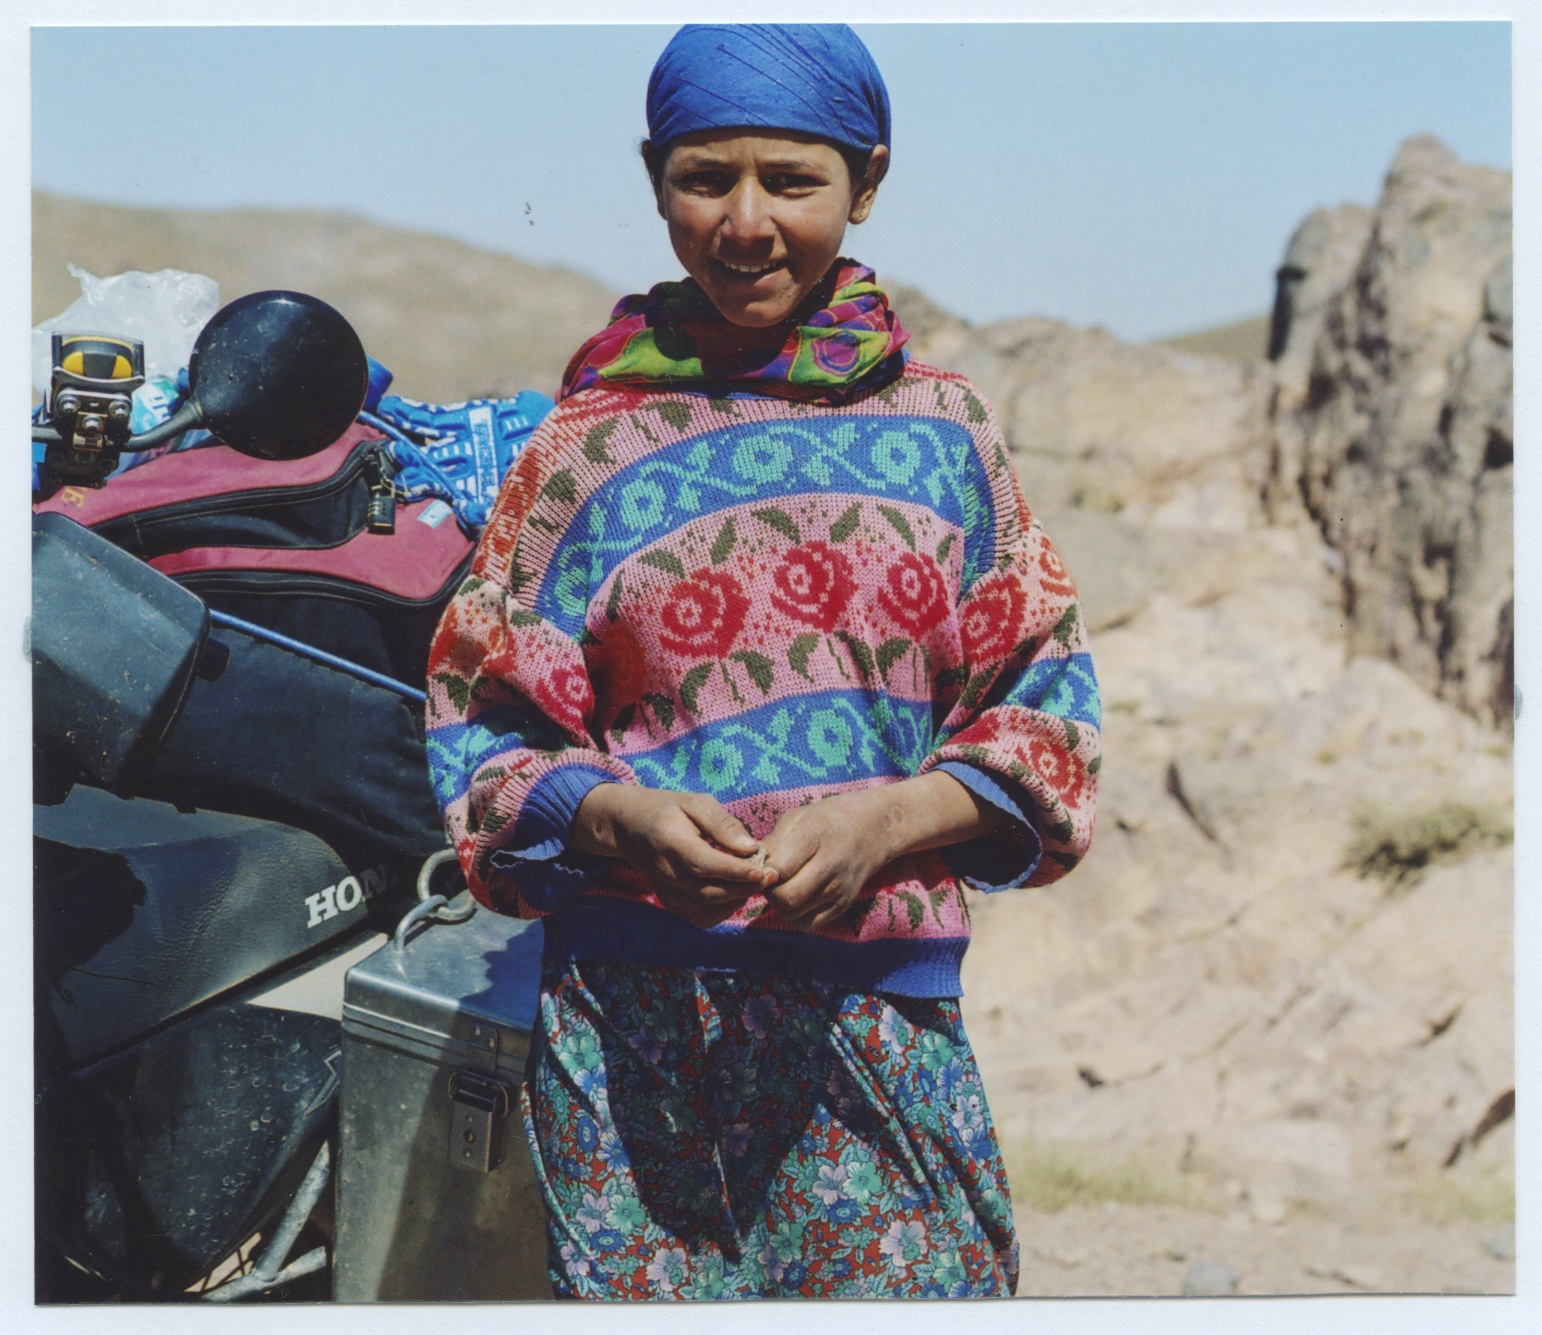 A BERBER GIRL SELLING ROCKS NEAR TIOUIT. I'D BEEN BOUNCING OVER THEM ALL DAY LONG. IT WAS A HARD SELL.